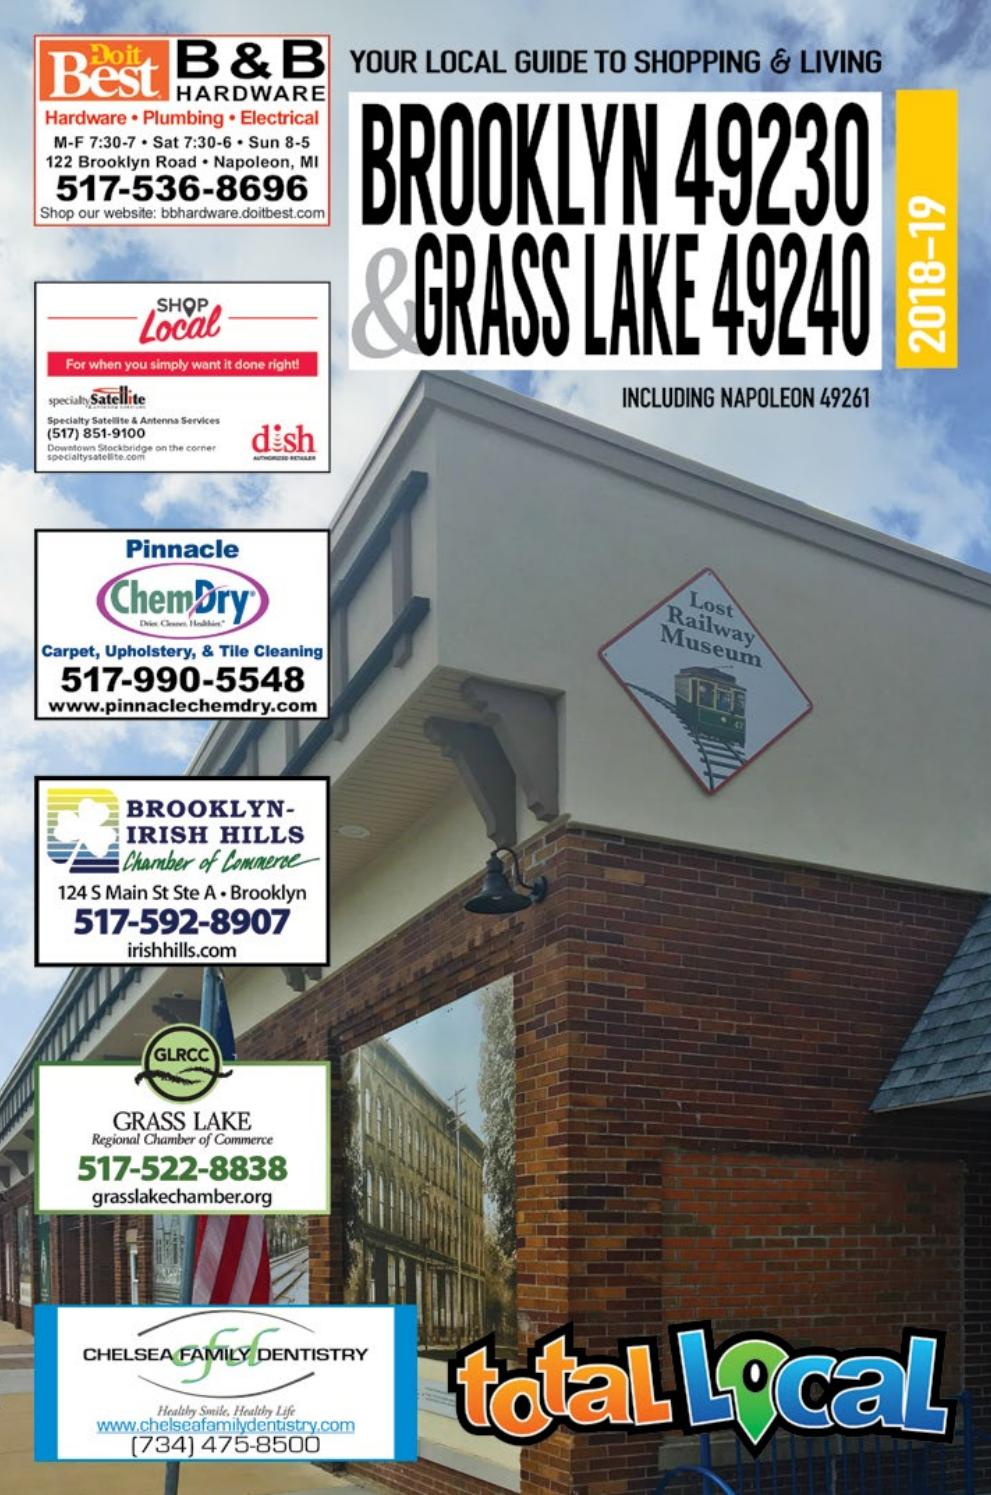 Total Local 2018 19 Brooklyn Grass Lake Mi Community Resource Guide Musical Doorbell Circuit Received By Email 4015 4093 Doorbells Issuu